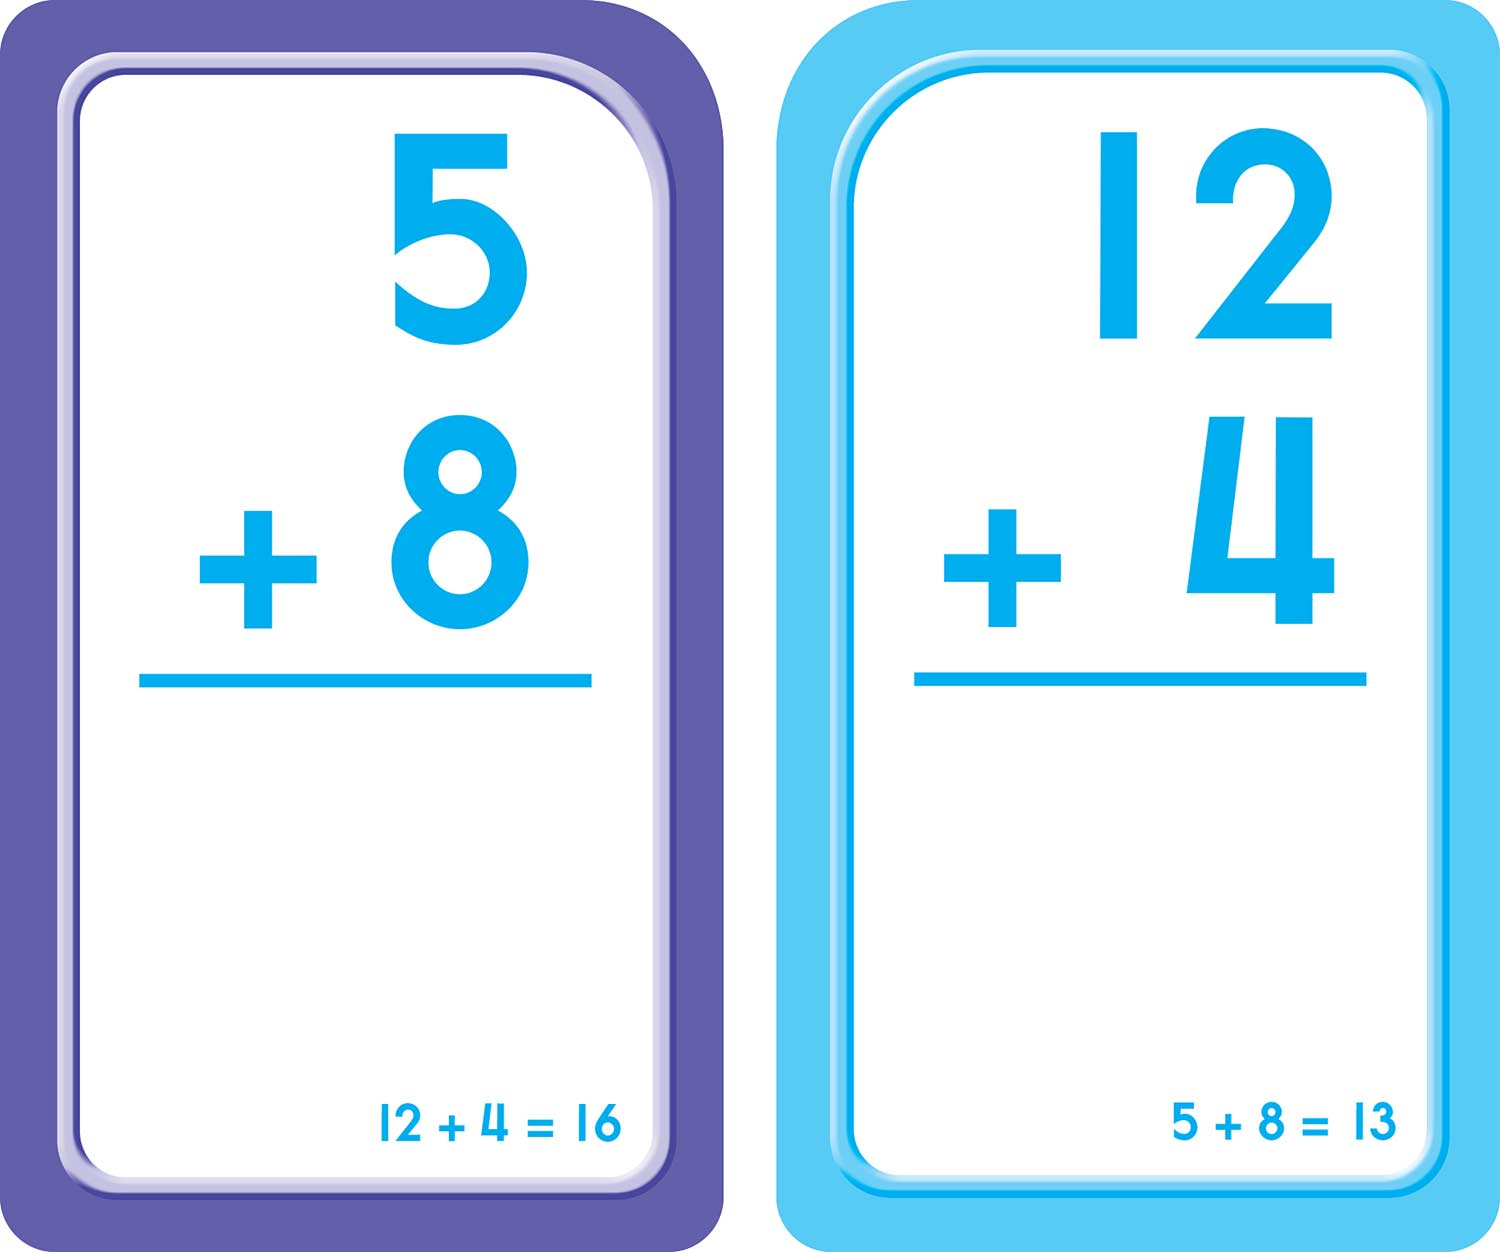 addition flash cards math flash cards by school zone raff and friends. Black Bedroom Furniture Sets. Home Design Ideas